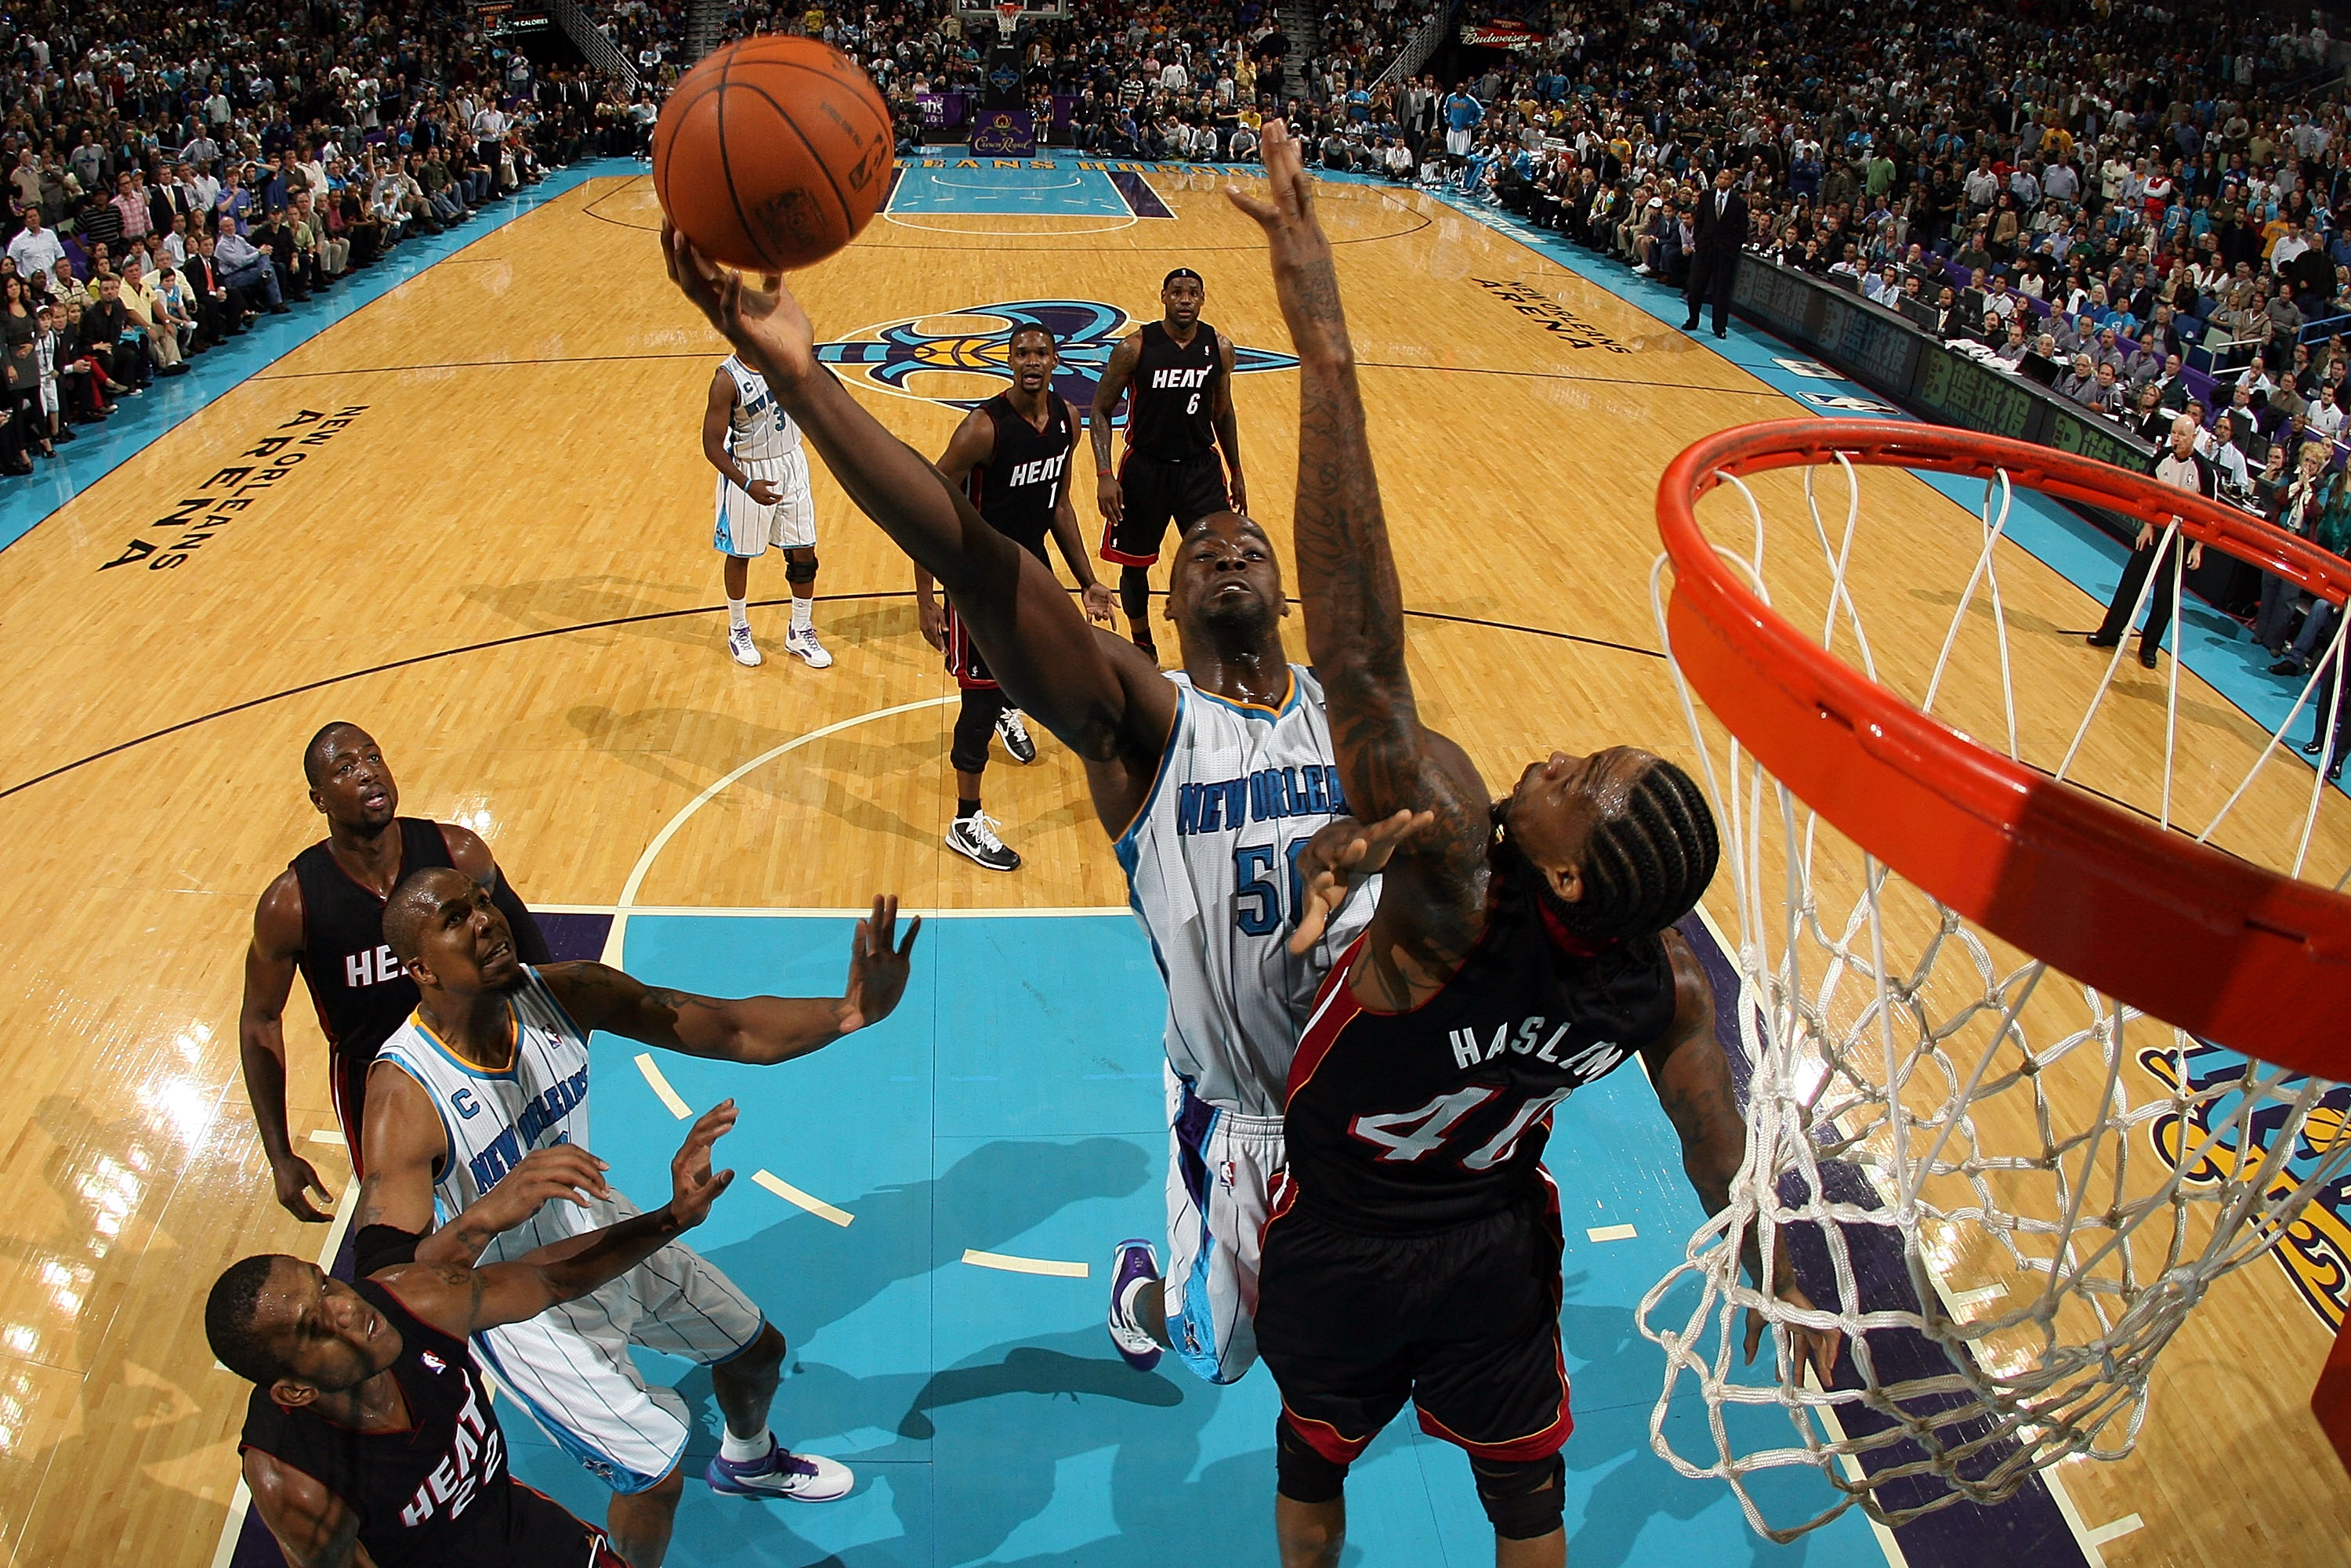 NEW ORLEANS - NOVEMBER 05:  Emeka  Okafor #50 of the New Orleans Hornets shoots the ball over Udonis Haslem #40 of the Miami Heat at the New Orleans Arena on November 5, 2010 in New Orleans, Louisiana.  The Hornets defeated the Heat 96-93.  NOTE TO USER: